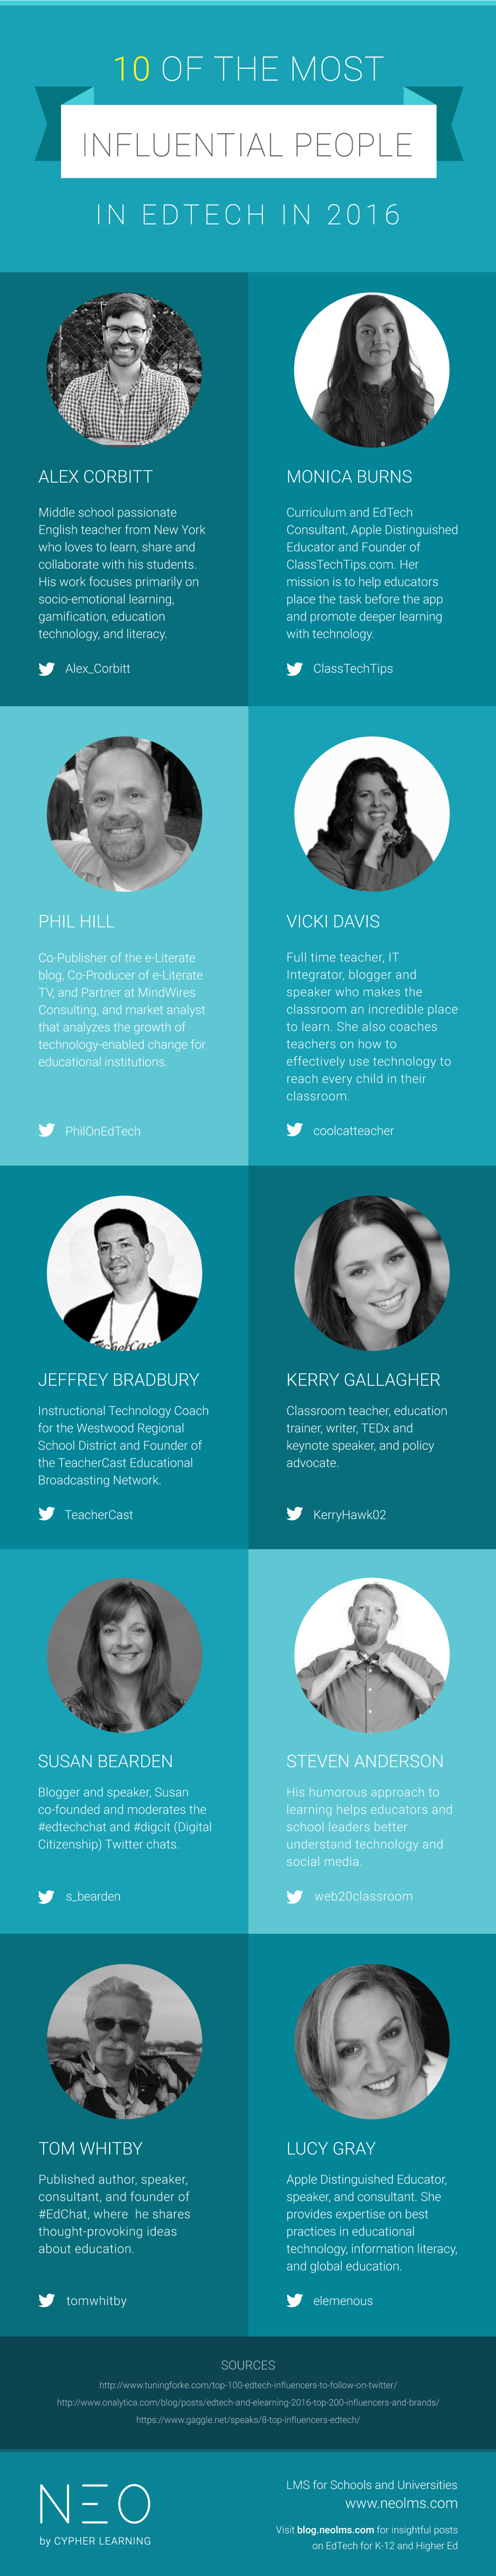 10 of the Most Influential People in EdTech in 2016